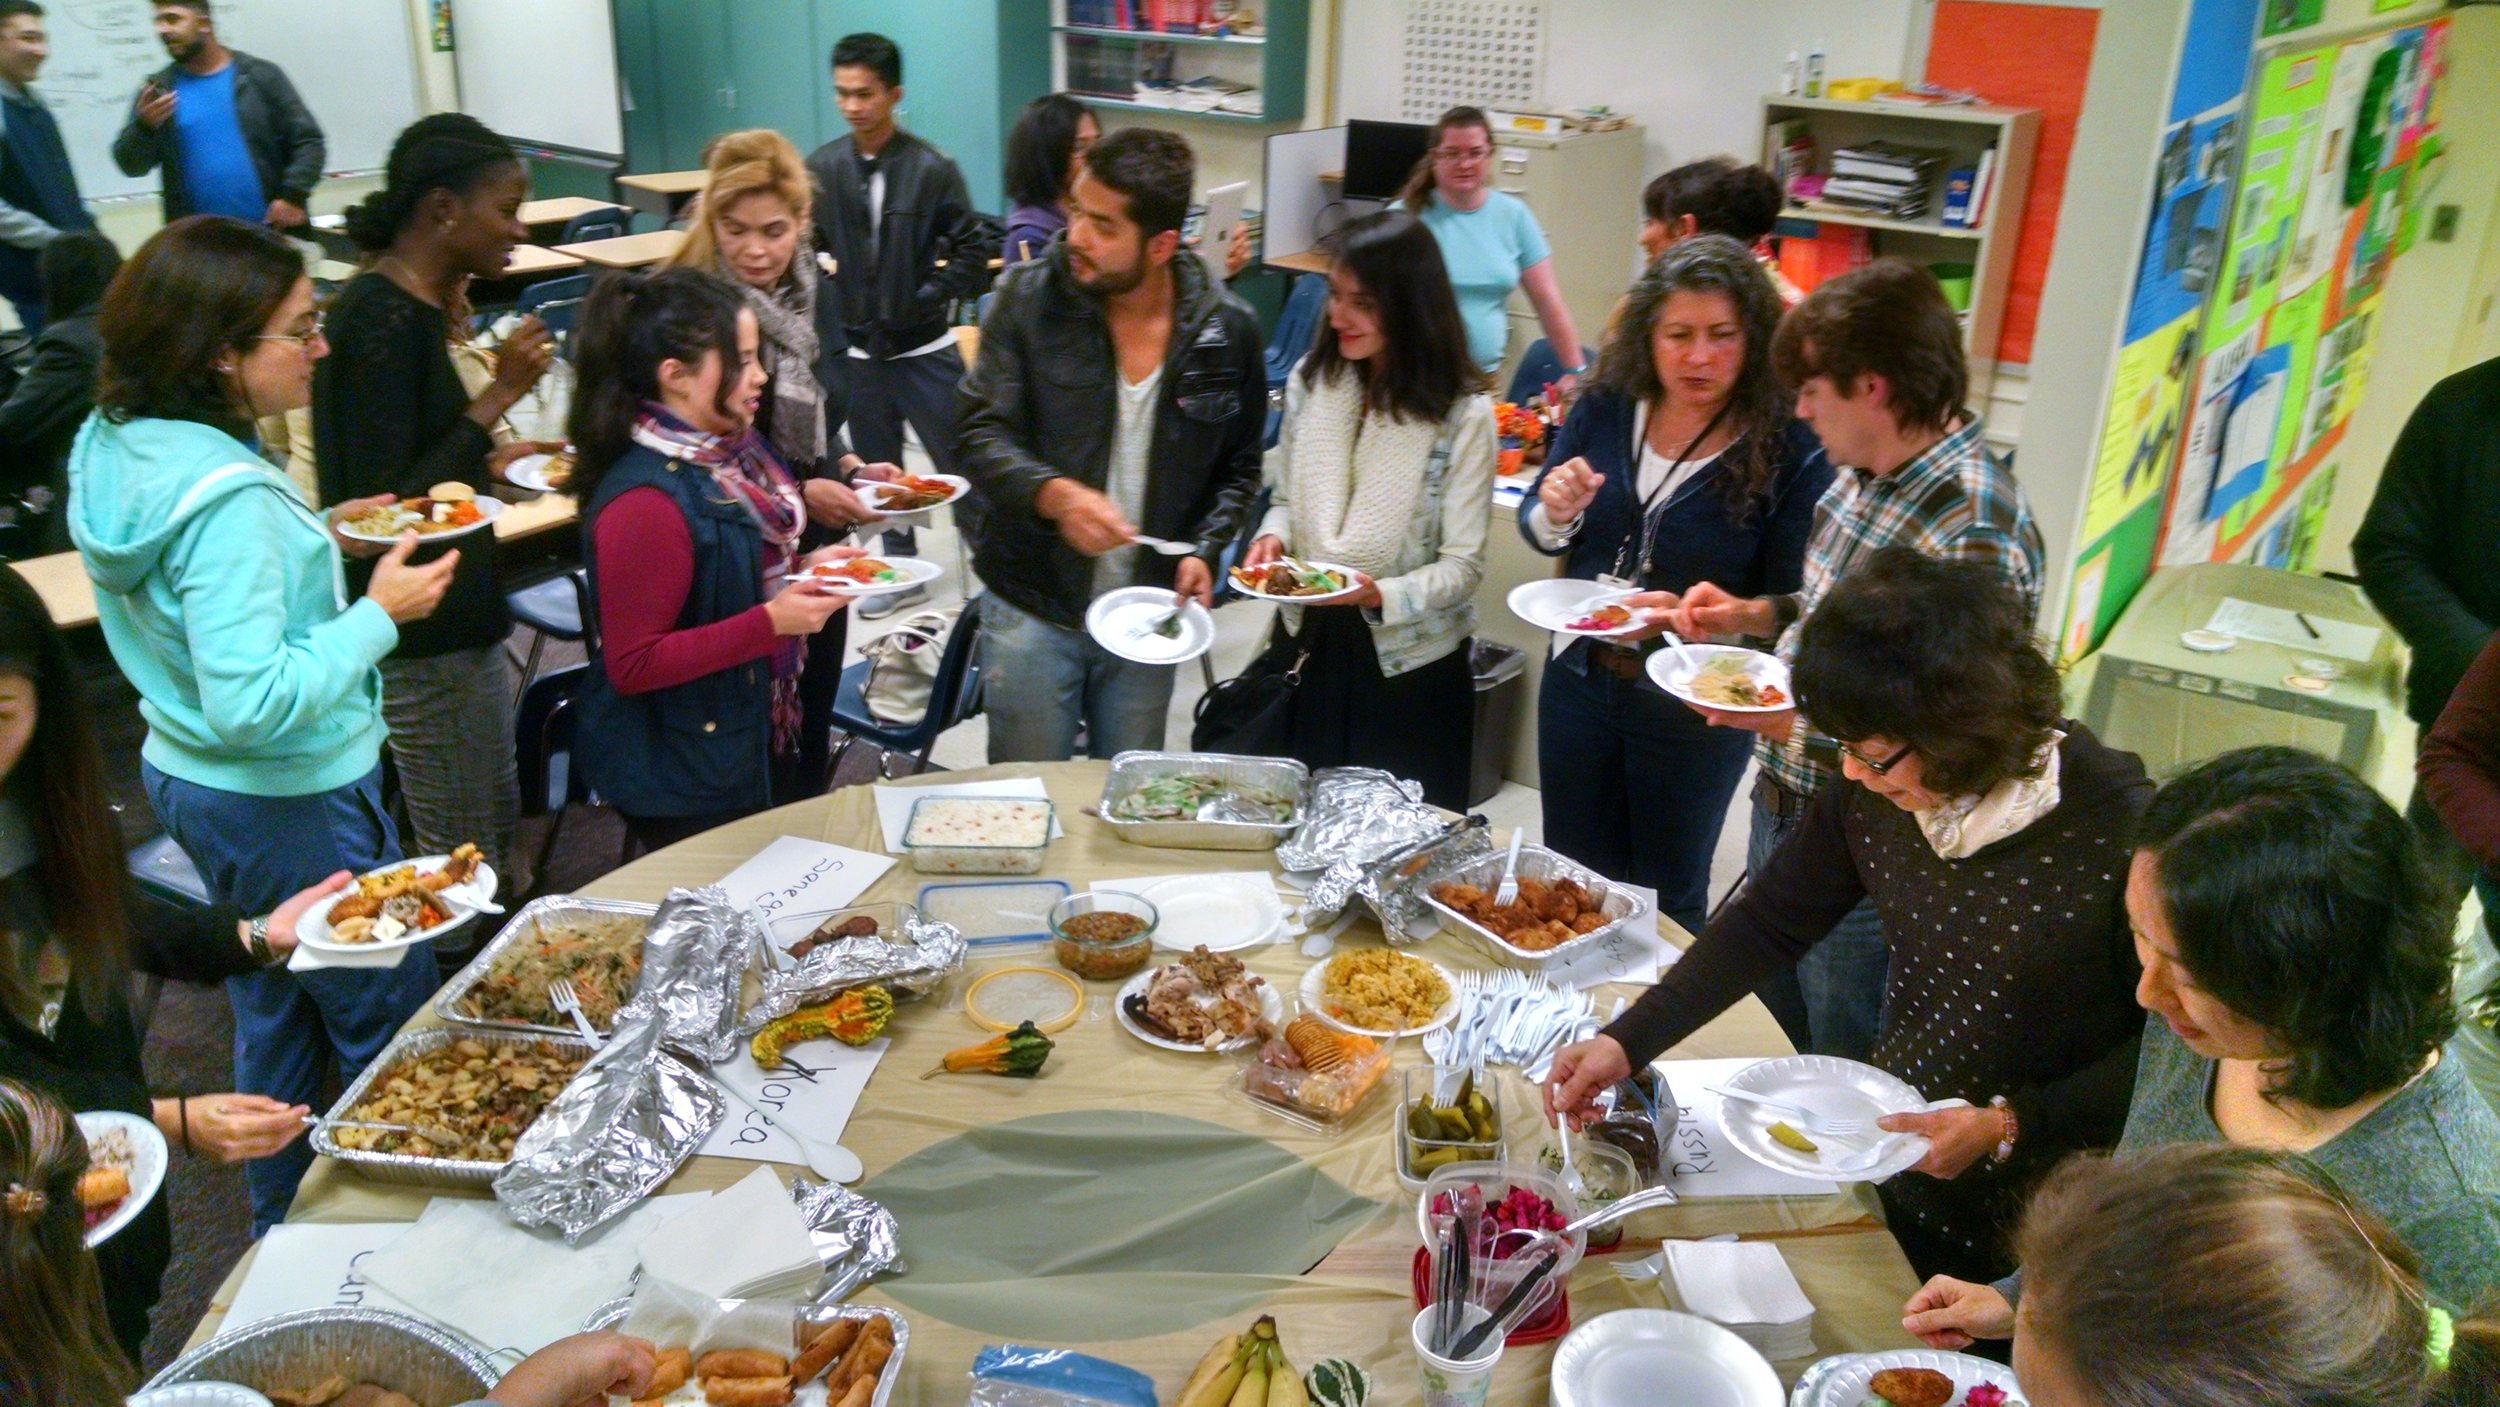 Pre-Thanksgiving Day feast! Students provided different foods from their home countries and presented information on the food's history.